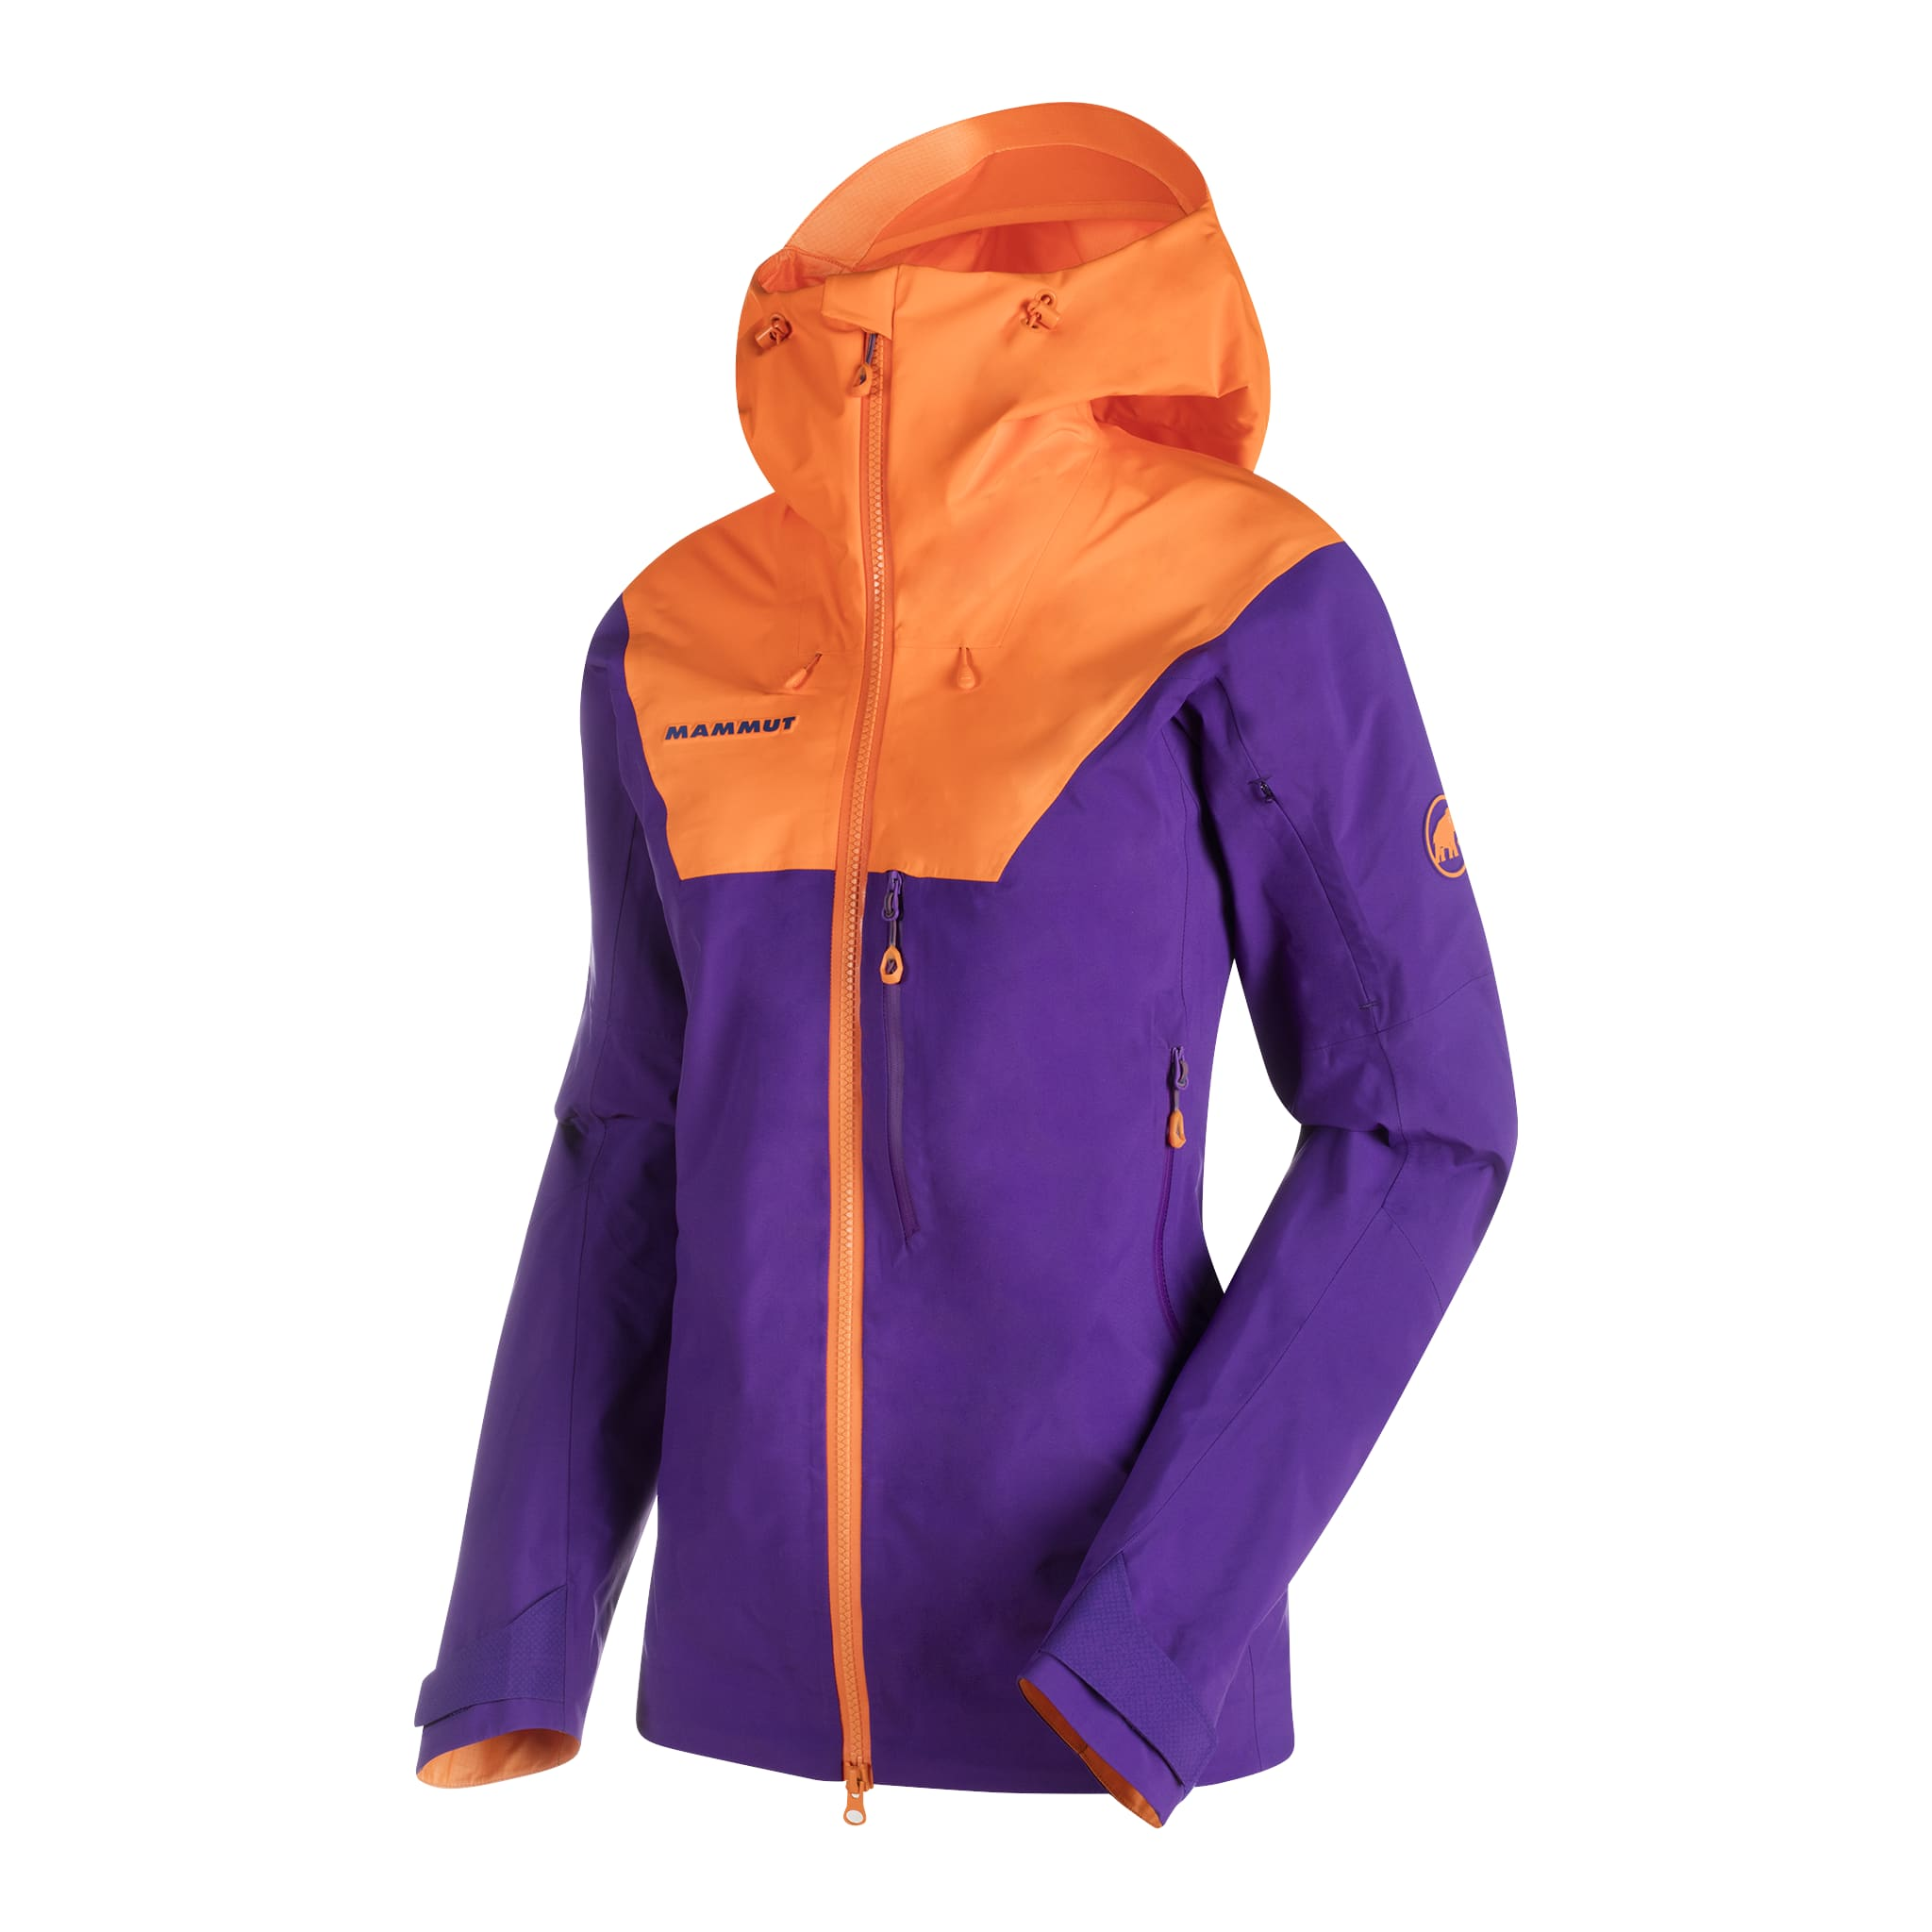 Nordwand Pro HS Hooded Jacket Ws